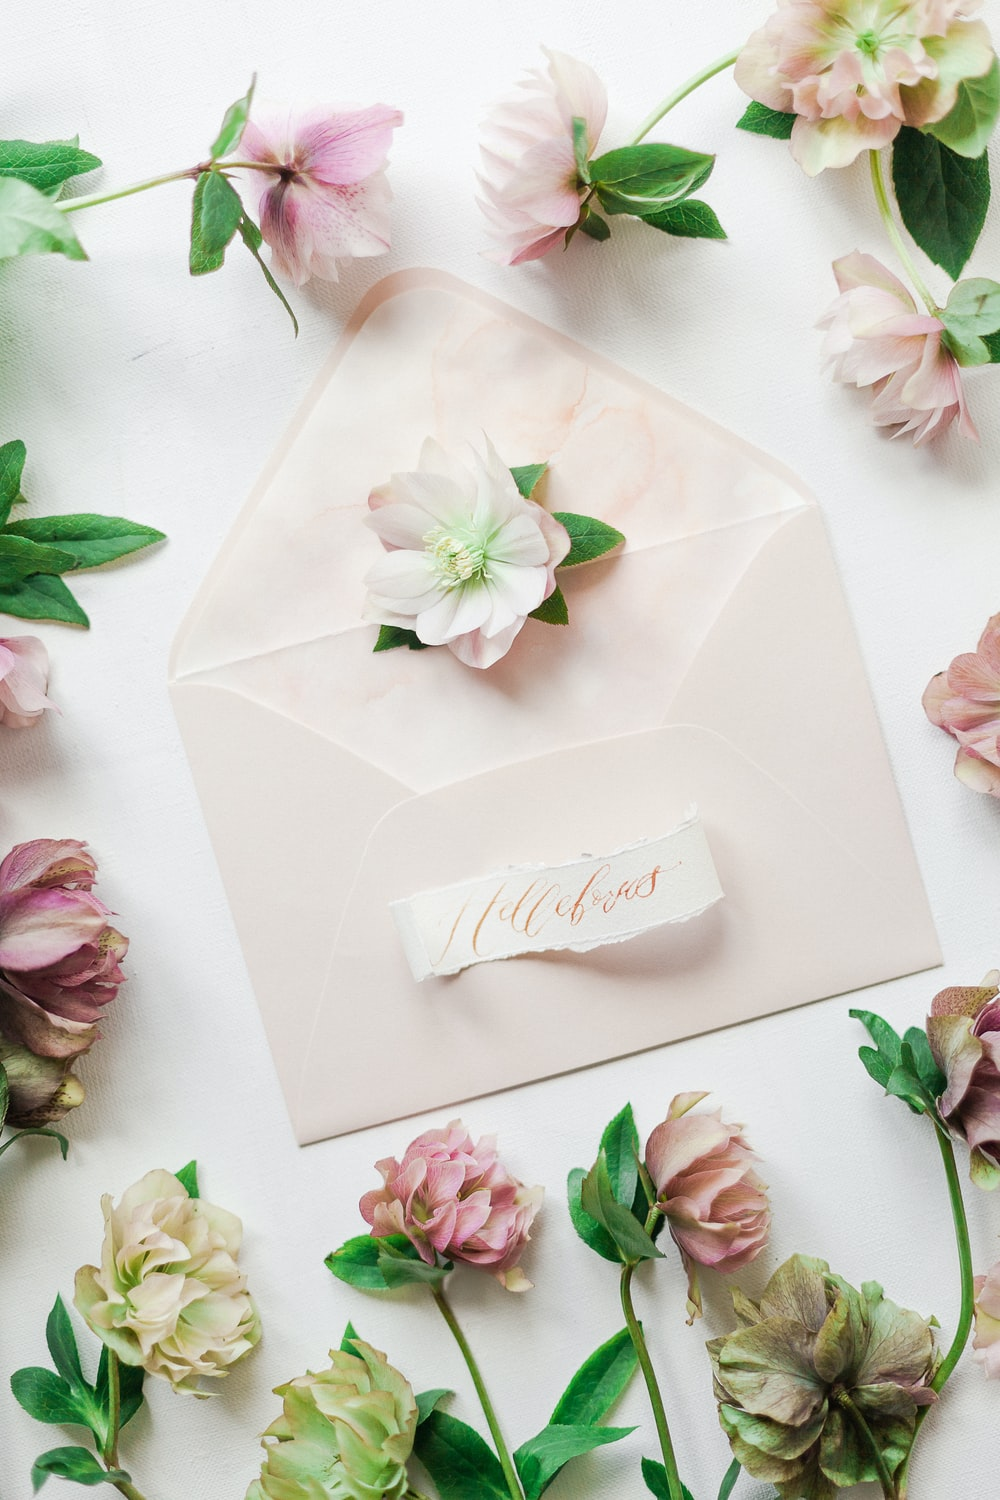 white and pink rose petals on white paper